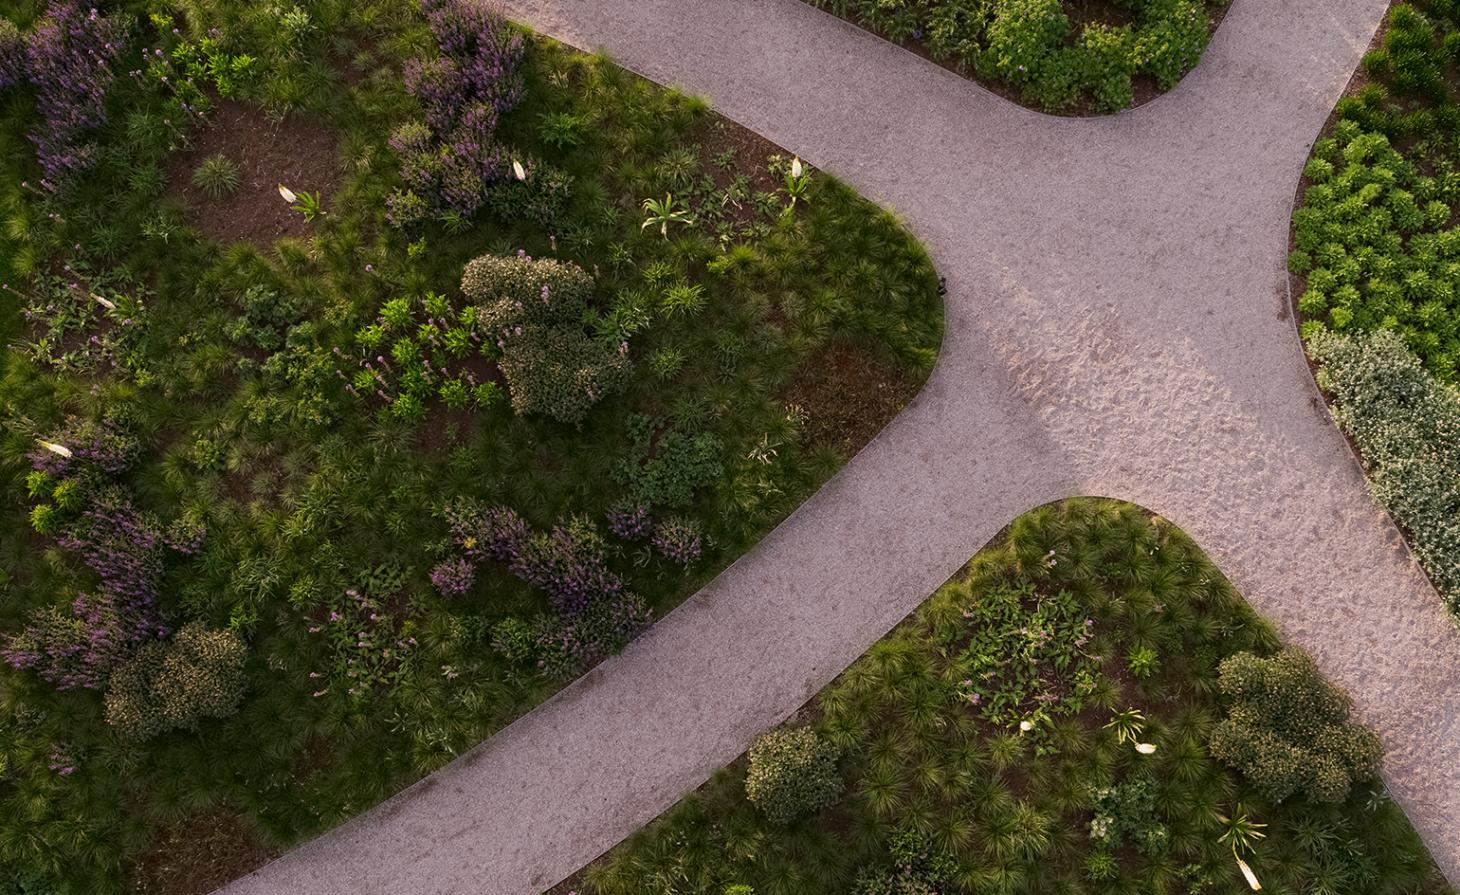 An aerial view of Piet Oudolf's plant curation for the Vitra Garden, shown among the campus' paths